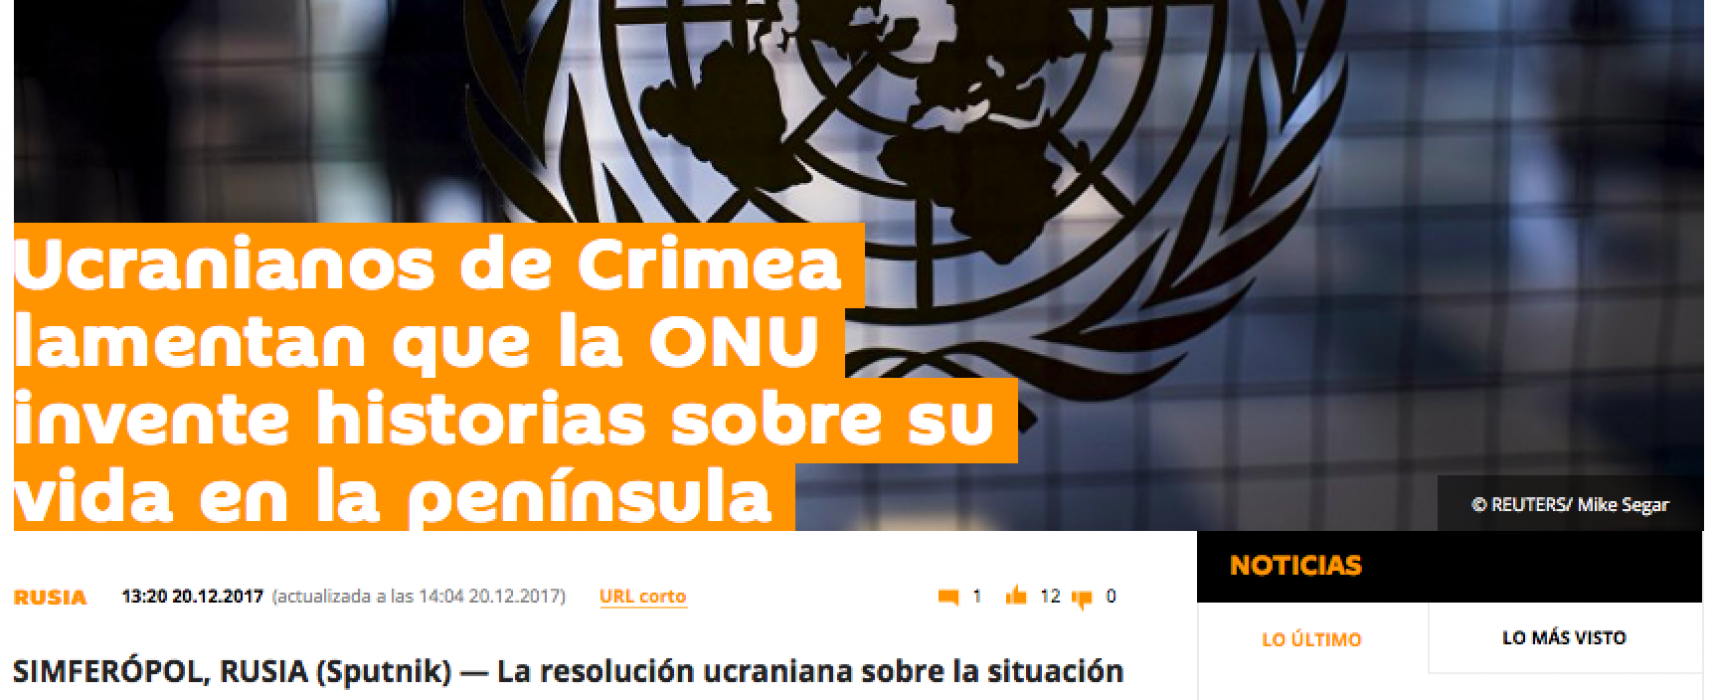 Fake: UN Fabricating Human Rights Violations in Crimea